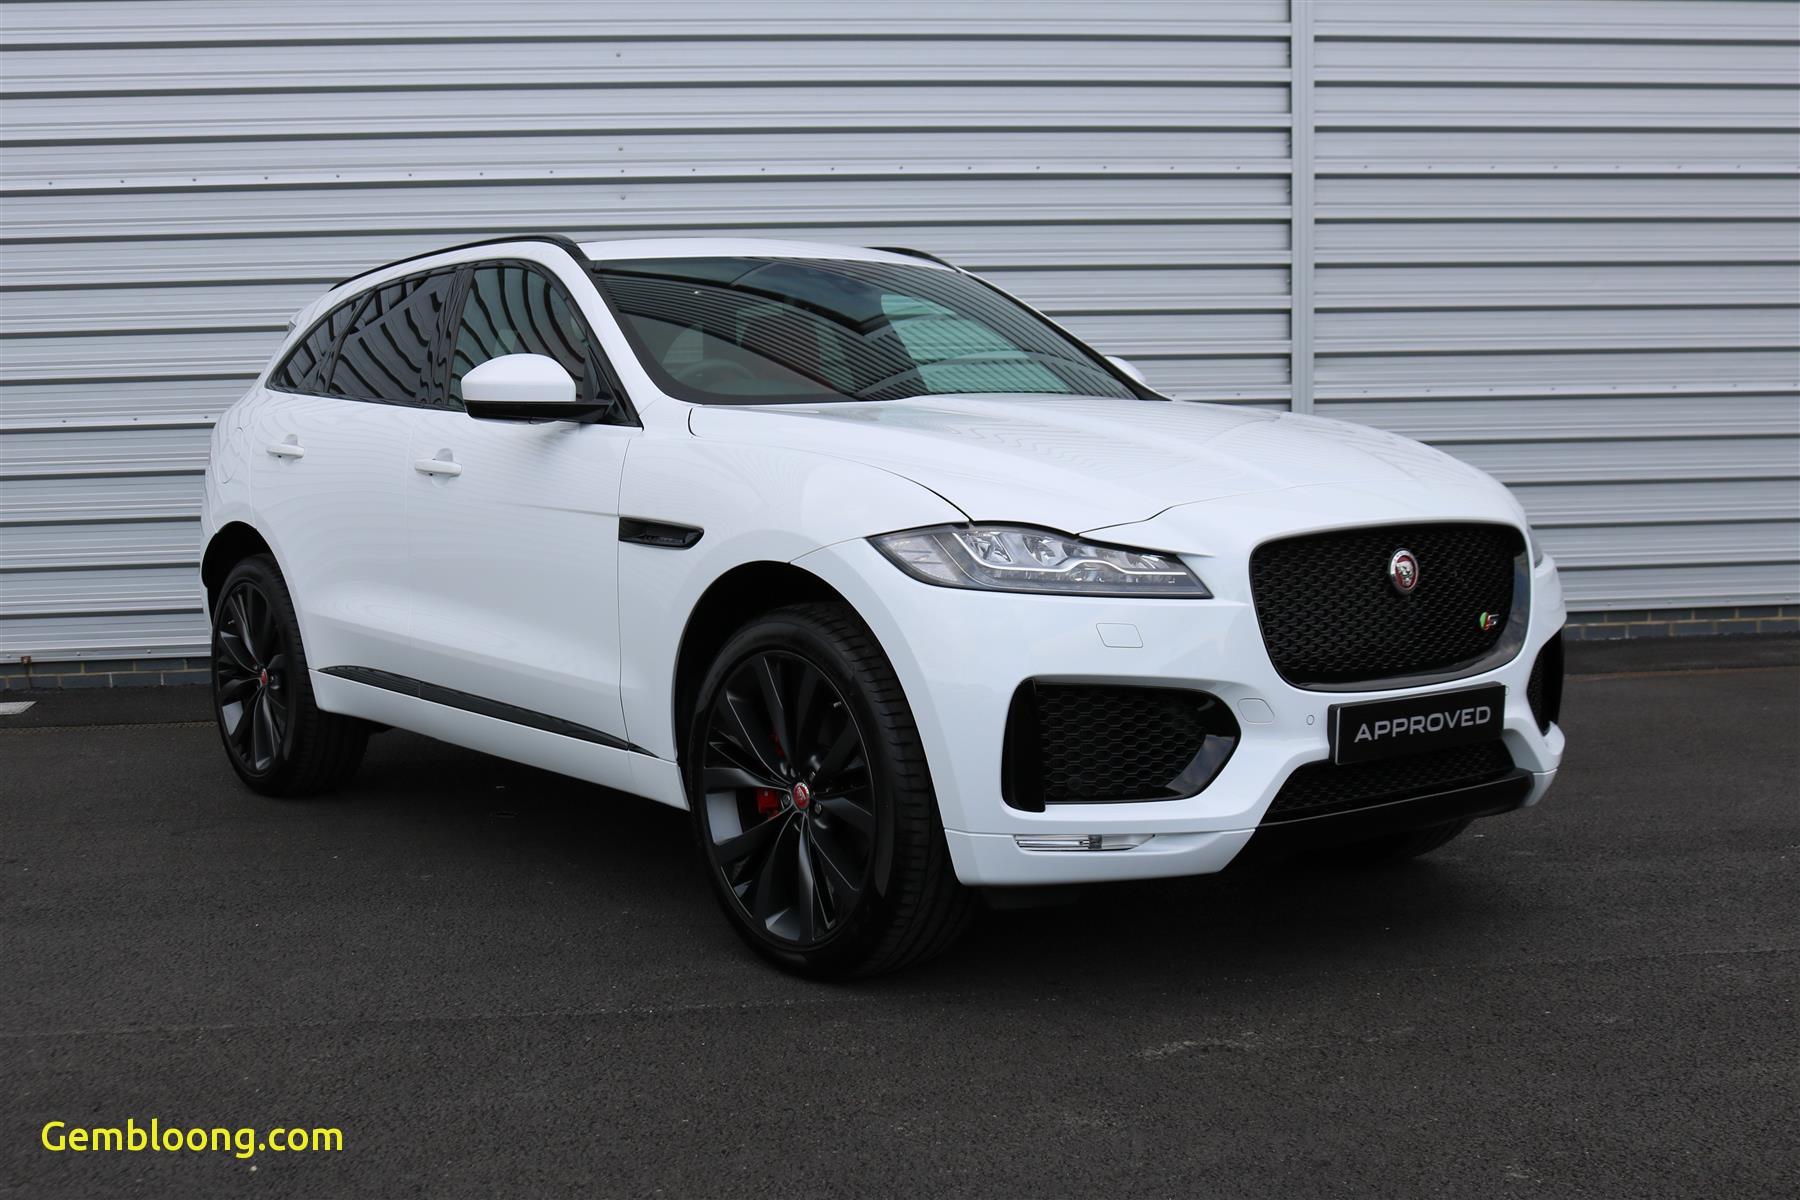 best used cars for sale elegant used cars near me cheap best used 2018 jaguar f